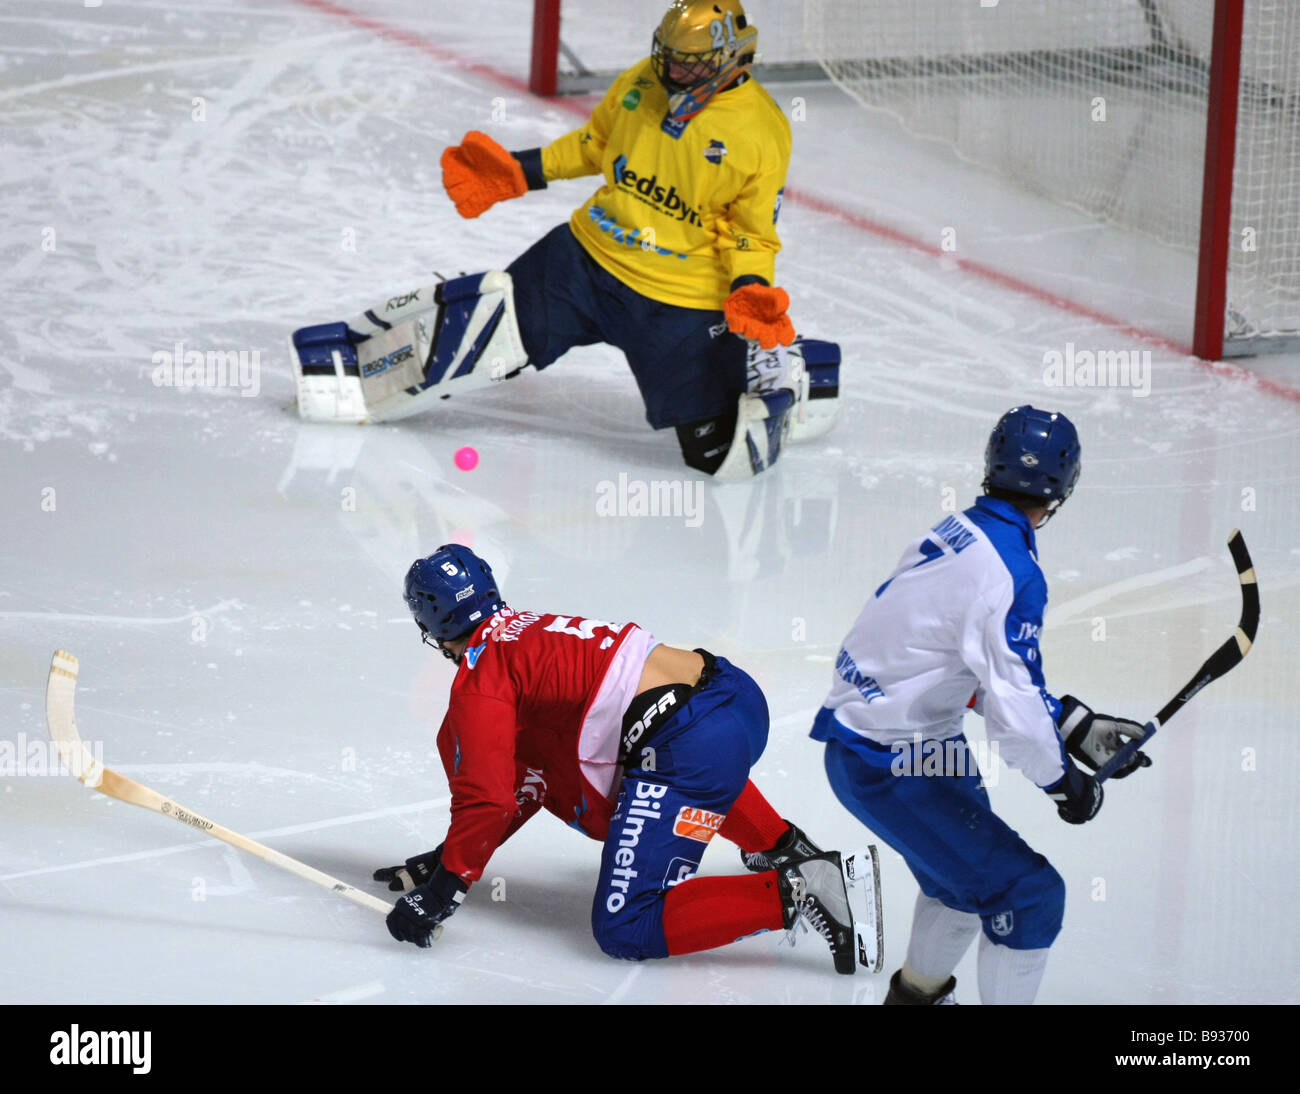 Risky moment near Edsbyn s goal in the decisive match in the Krylatskoye Stadium between Edsbyn Sweden and Dinamo - Stock Image